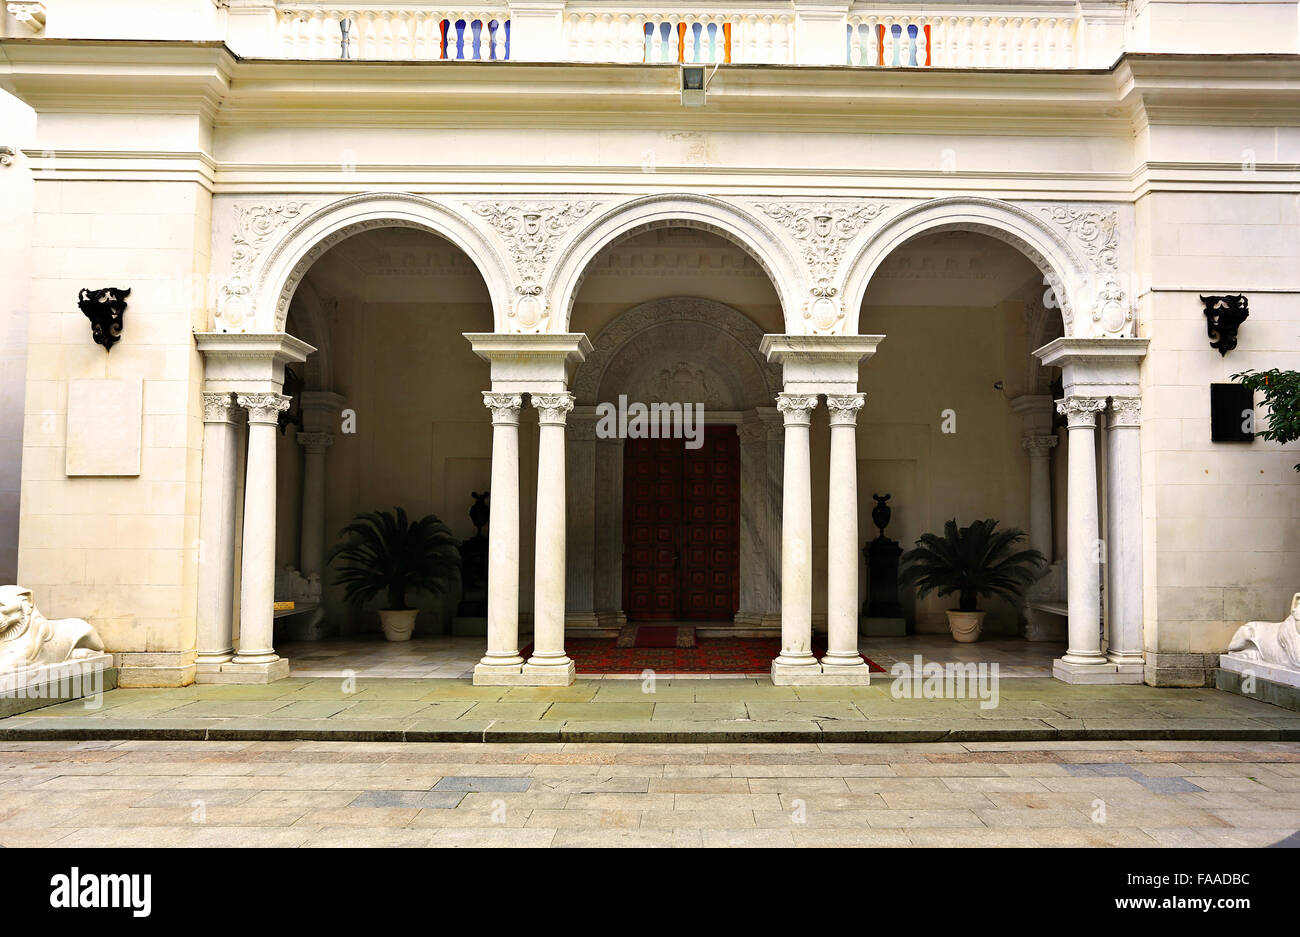 Main entrance in a white classical  palace with arches and columns - Stock Image